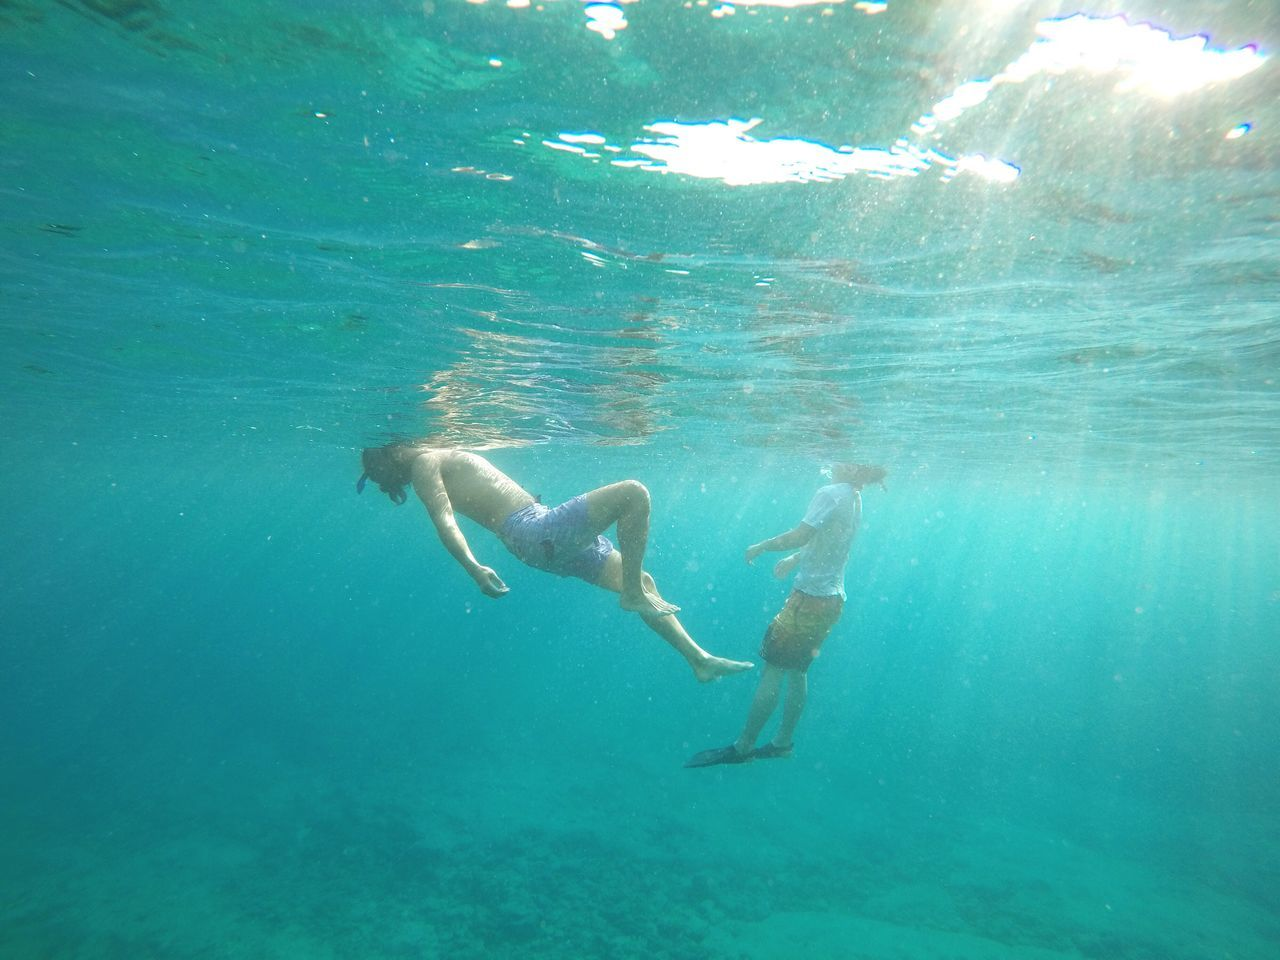 EyeEm Selects Water Real People Swimming Underwater UnderSea Adventure Shirtless Togetherness Nature Beauty In Nature Sea Day Two People Full Length Lifestyles Okinawa Relaxed Floating In Water Snorkeling Outdoors Men